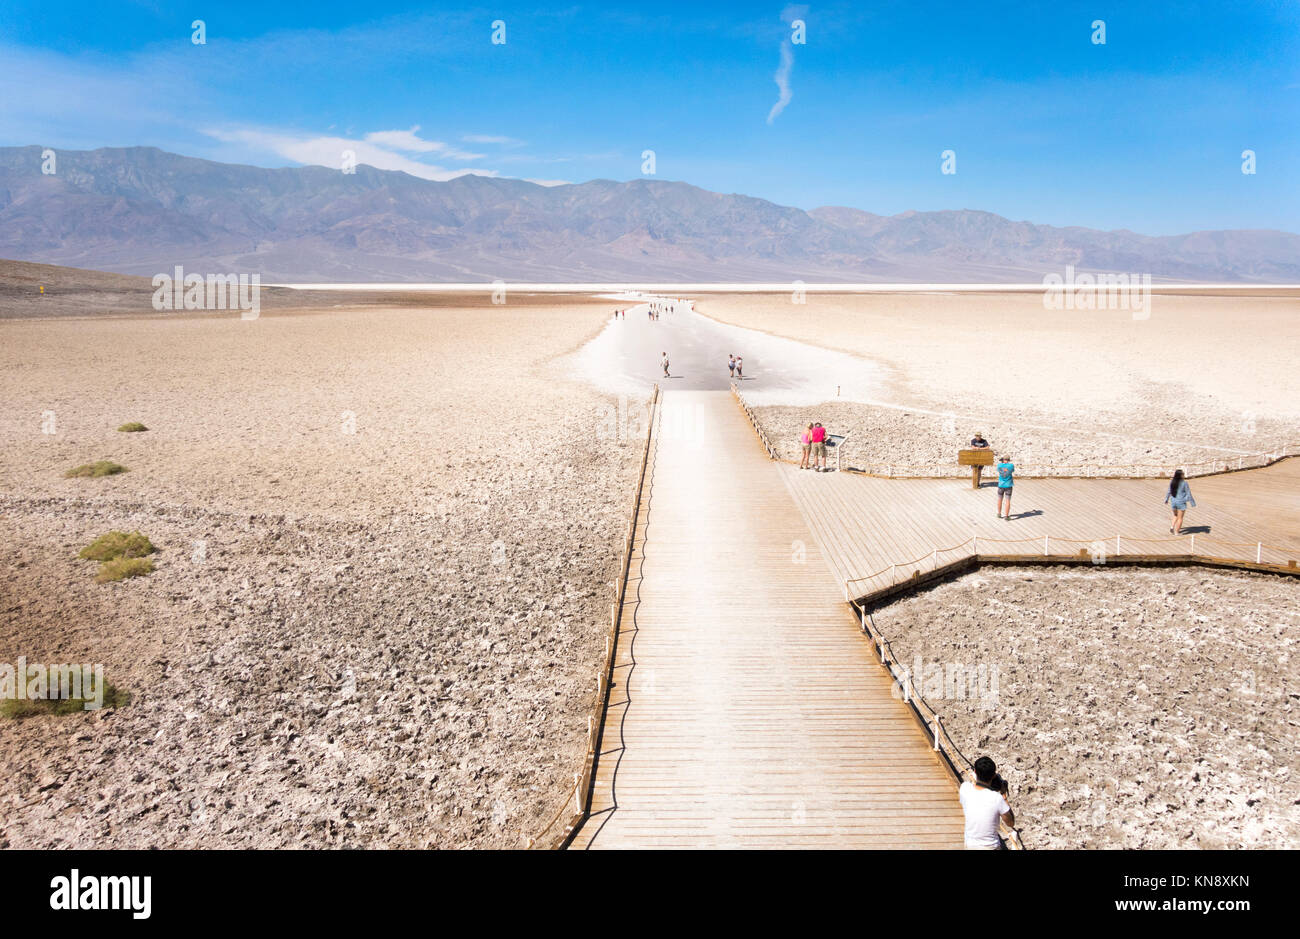 Death Valley Badwater Basin. Trailhead and boardwalk with visitors. Death Valley National Park California - Stock Image